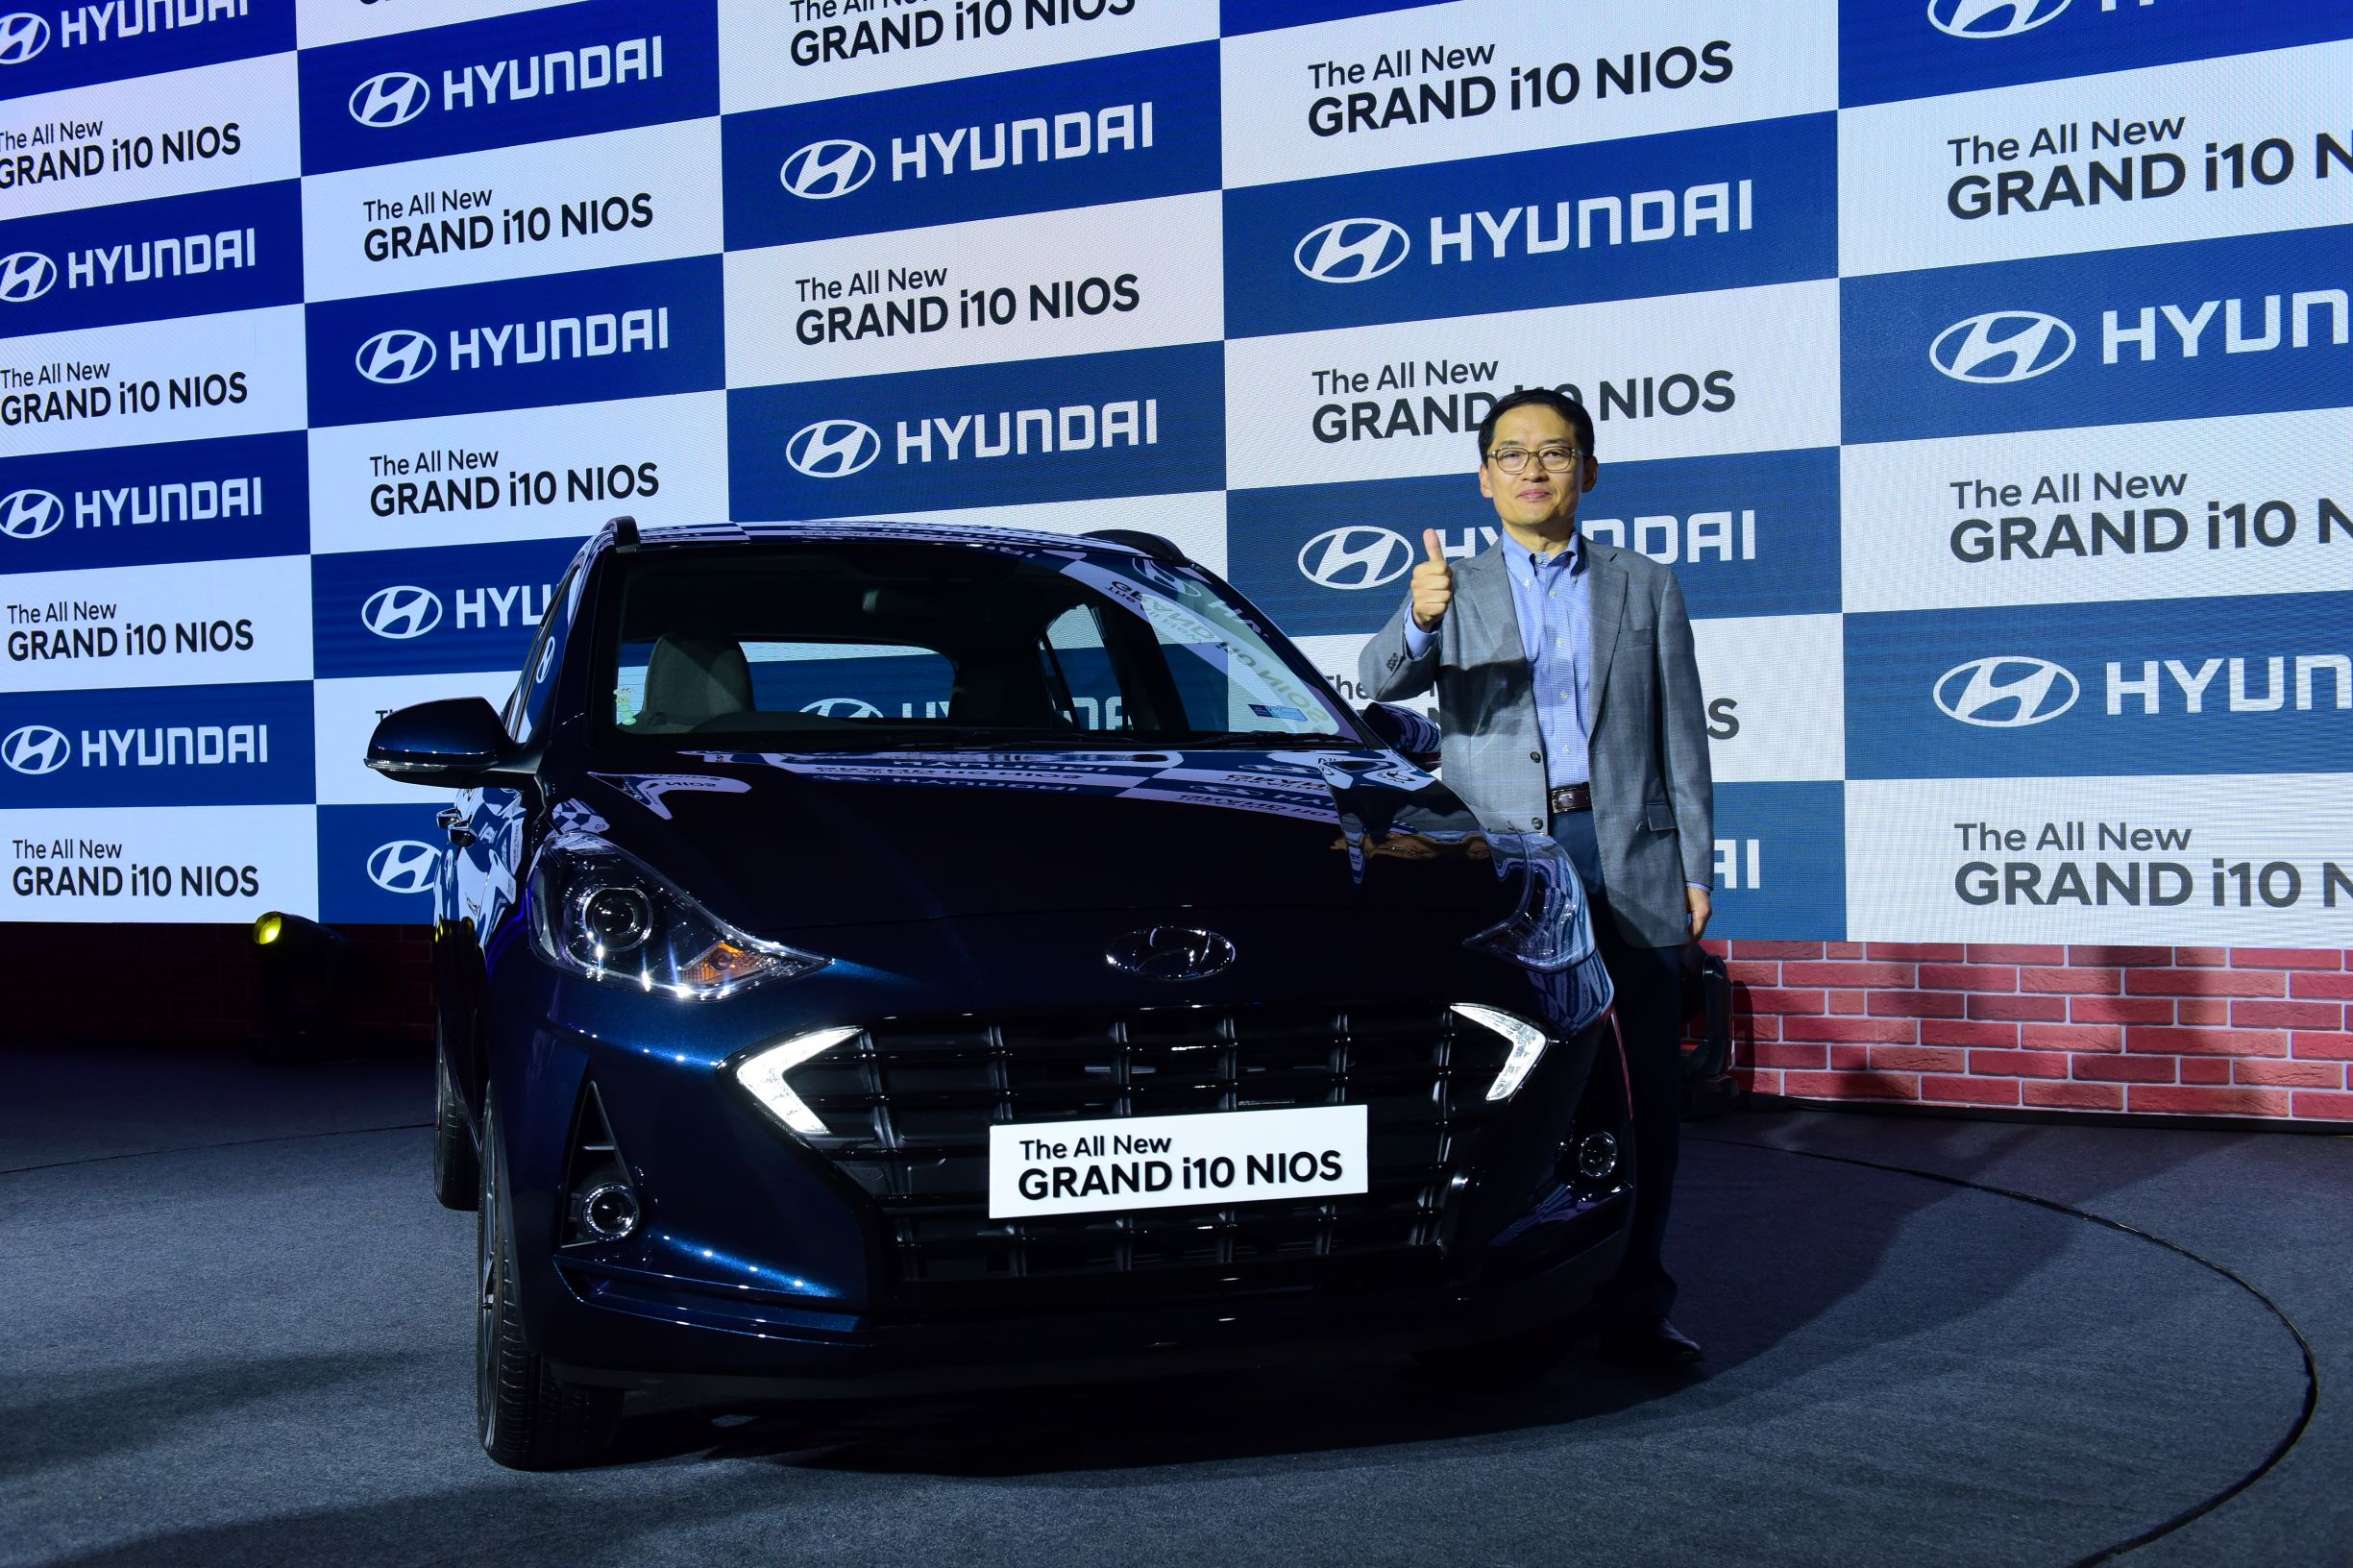 Mr. S.S. Kim, MD & CEO, Hyundai Motor India Limited at the Launch of Hyundai GRAND i10 NIOS in New Delhi -Photo By GPN